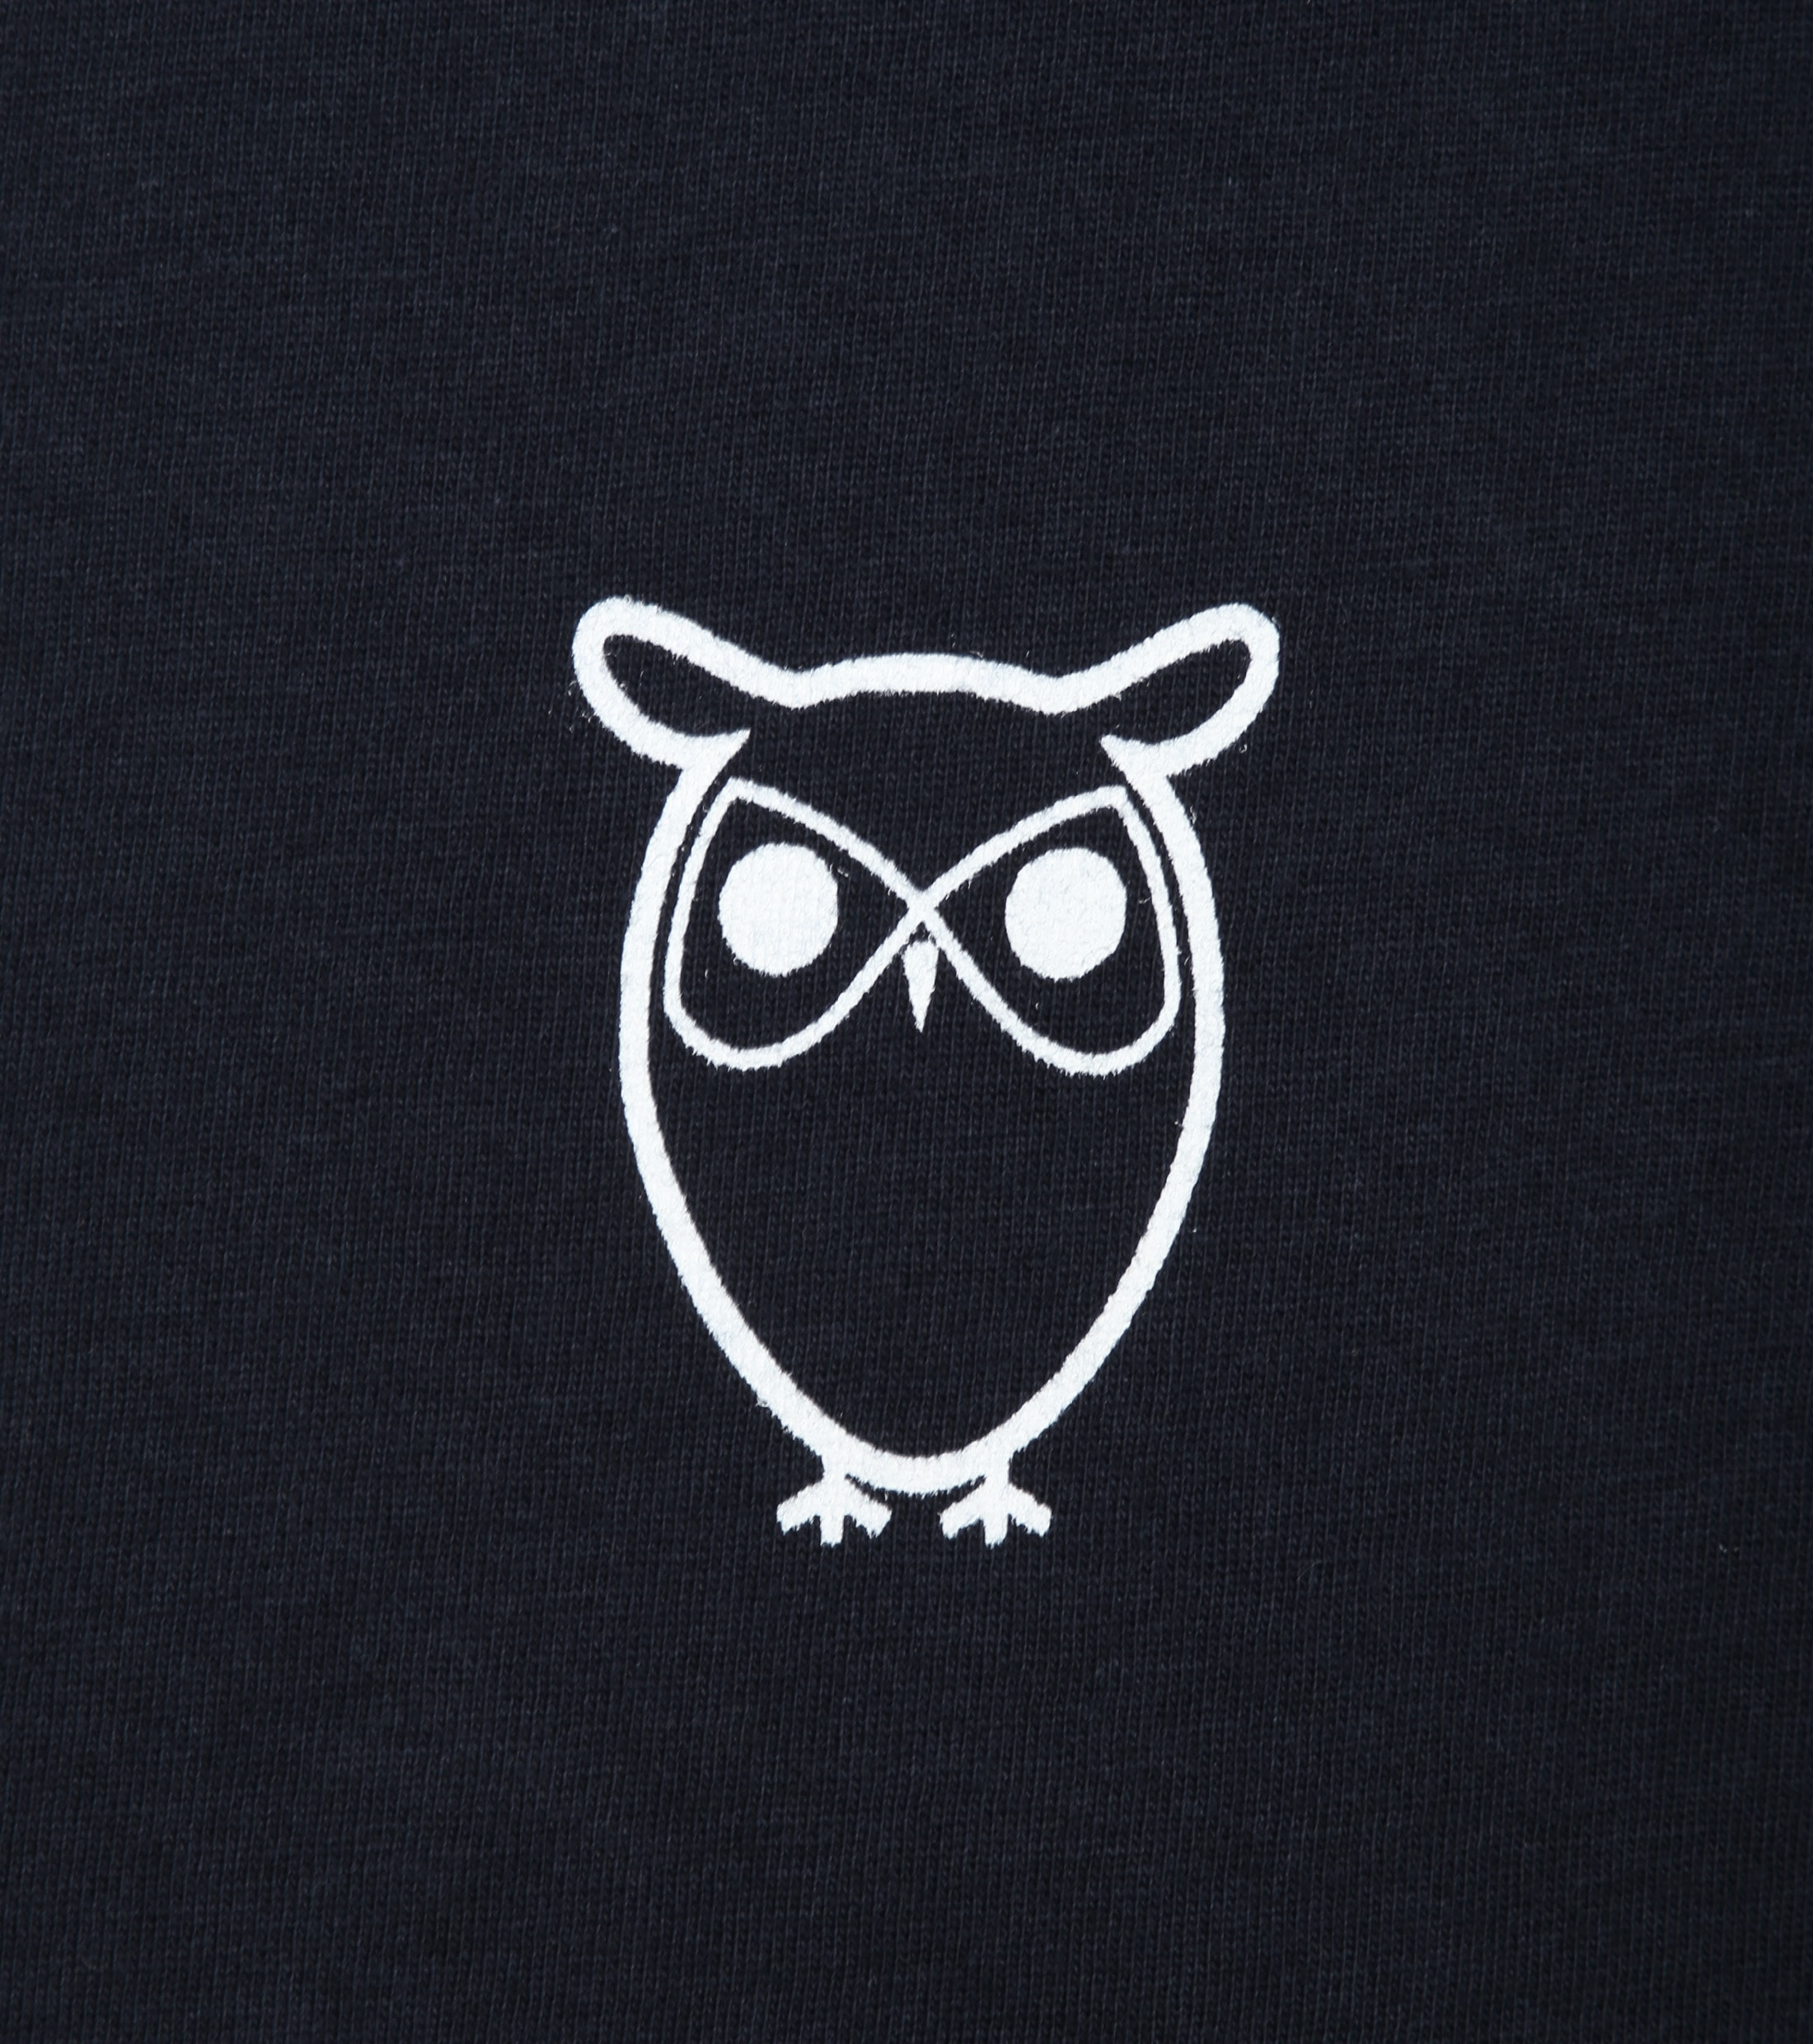 Knowledge Cotton Apparel T-shirt Owl Navy foto 1